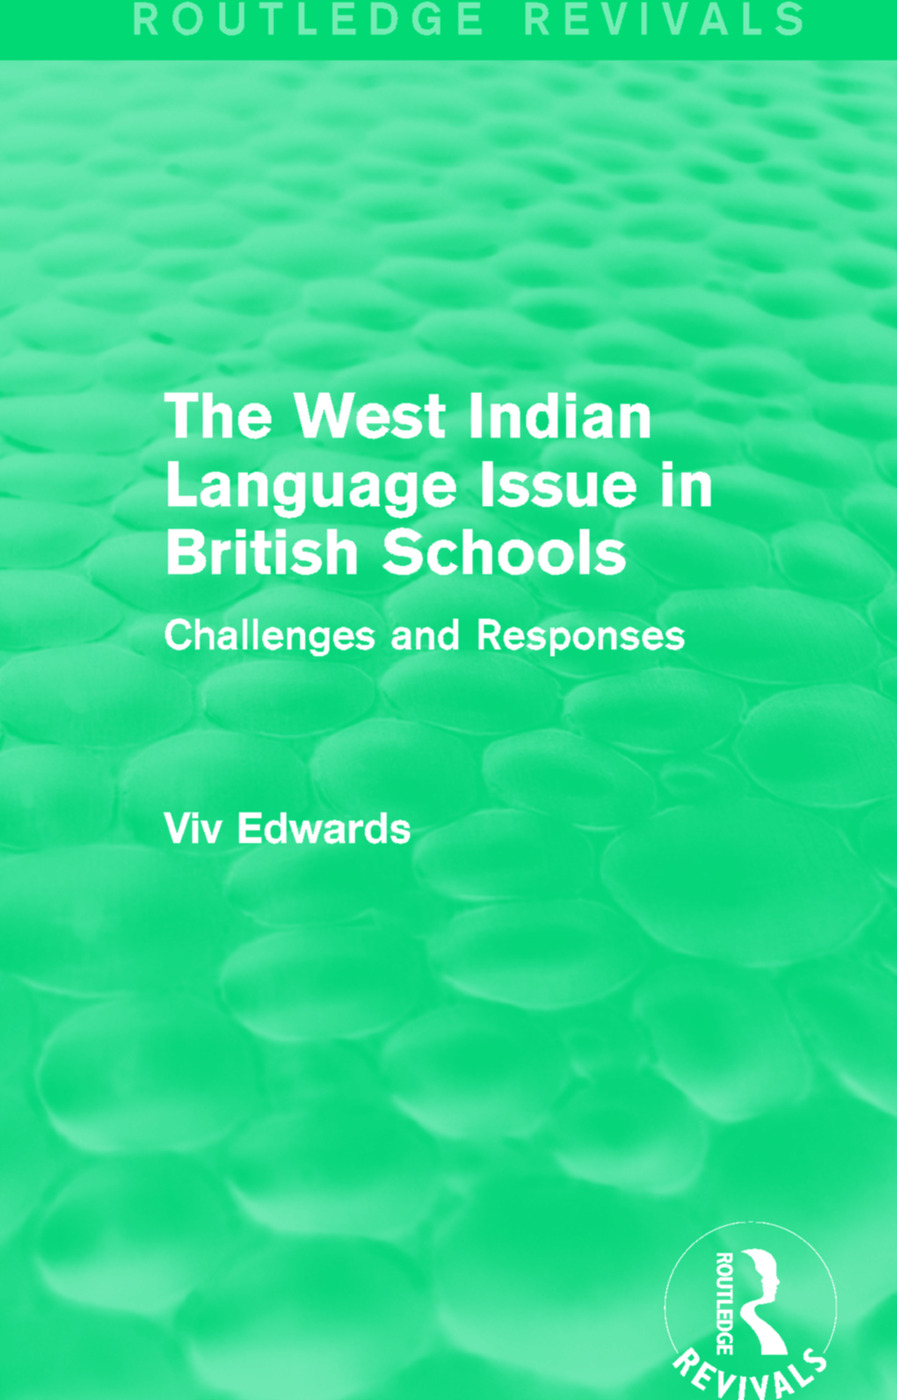 The West Indian Language Issue in British Schools (1979)